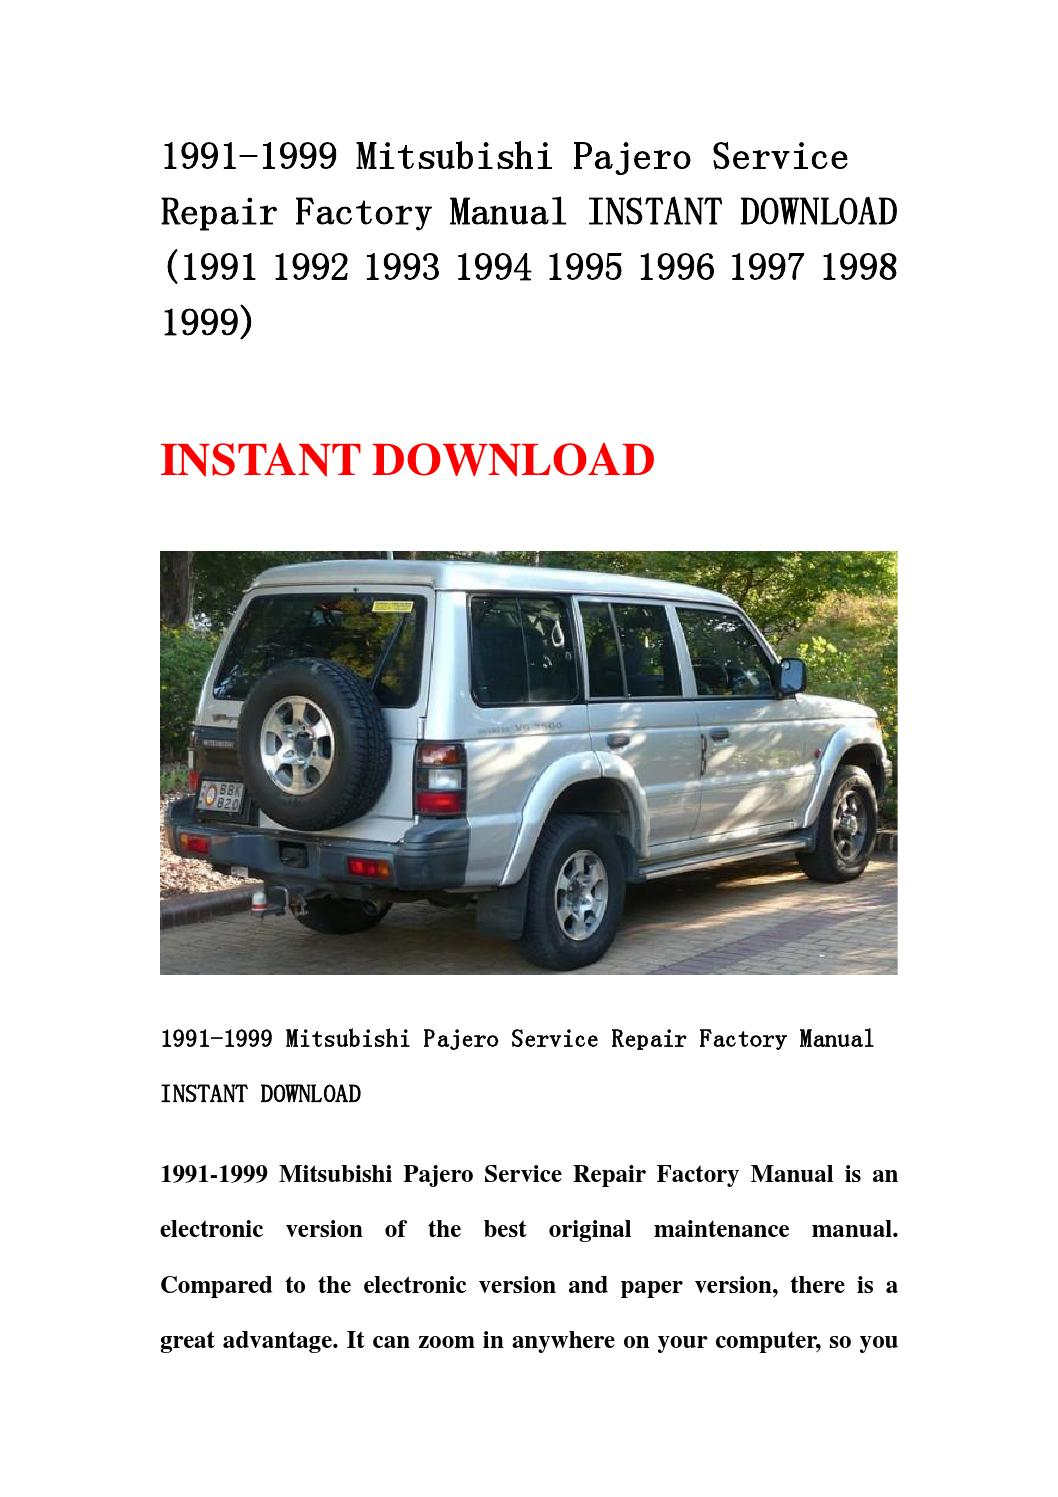 Isuzu Npr Service Manual Download Also 1994 Isuzu Npr Wiring Diagram